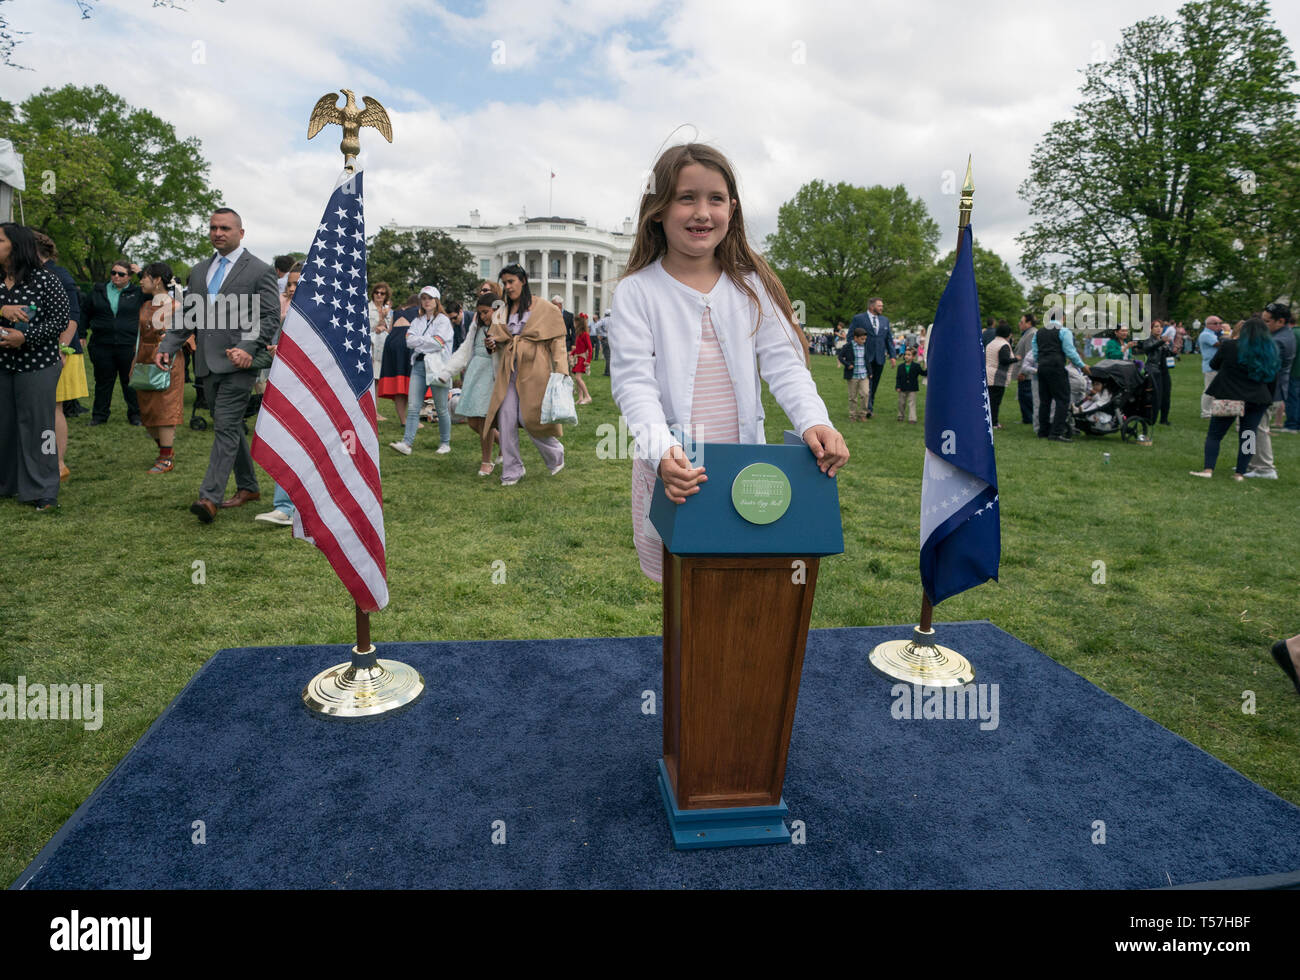 Washington, United States Of America. 22nd Apr, 2019. A child poses next to a mini podium during the White House Easter Egg Roll at the White House in Washington, DC on April 22, 2019. Credit: Kevin Dietsch/Pool via CNP | usage worldwide Credit: dpa/Alamy Live News - Stock Image